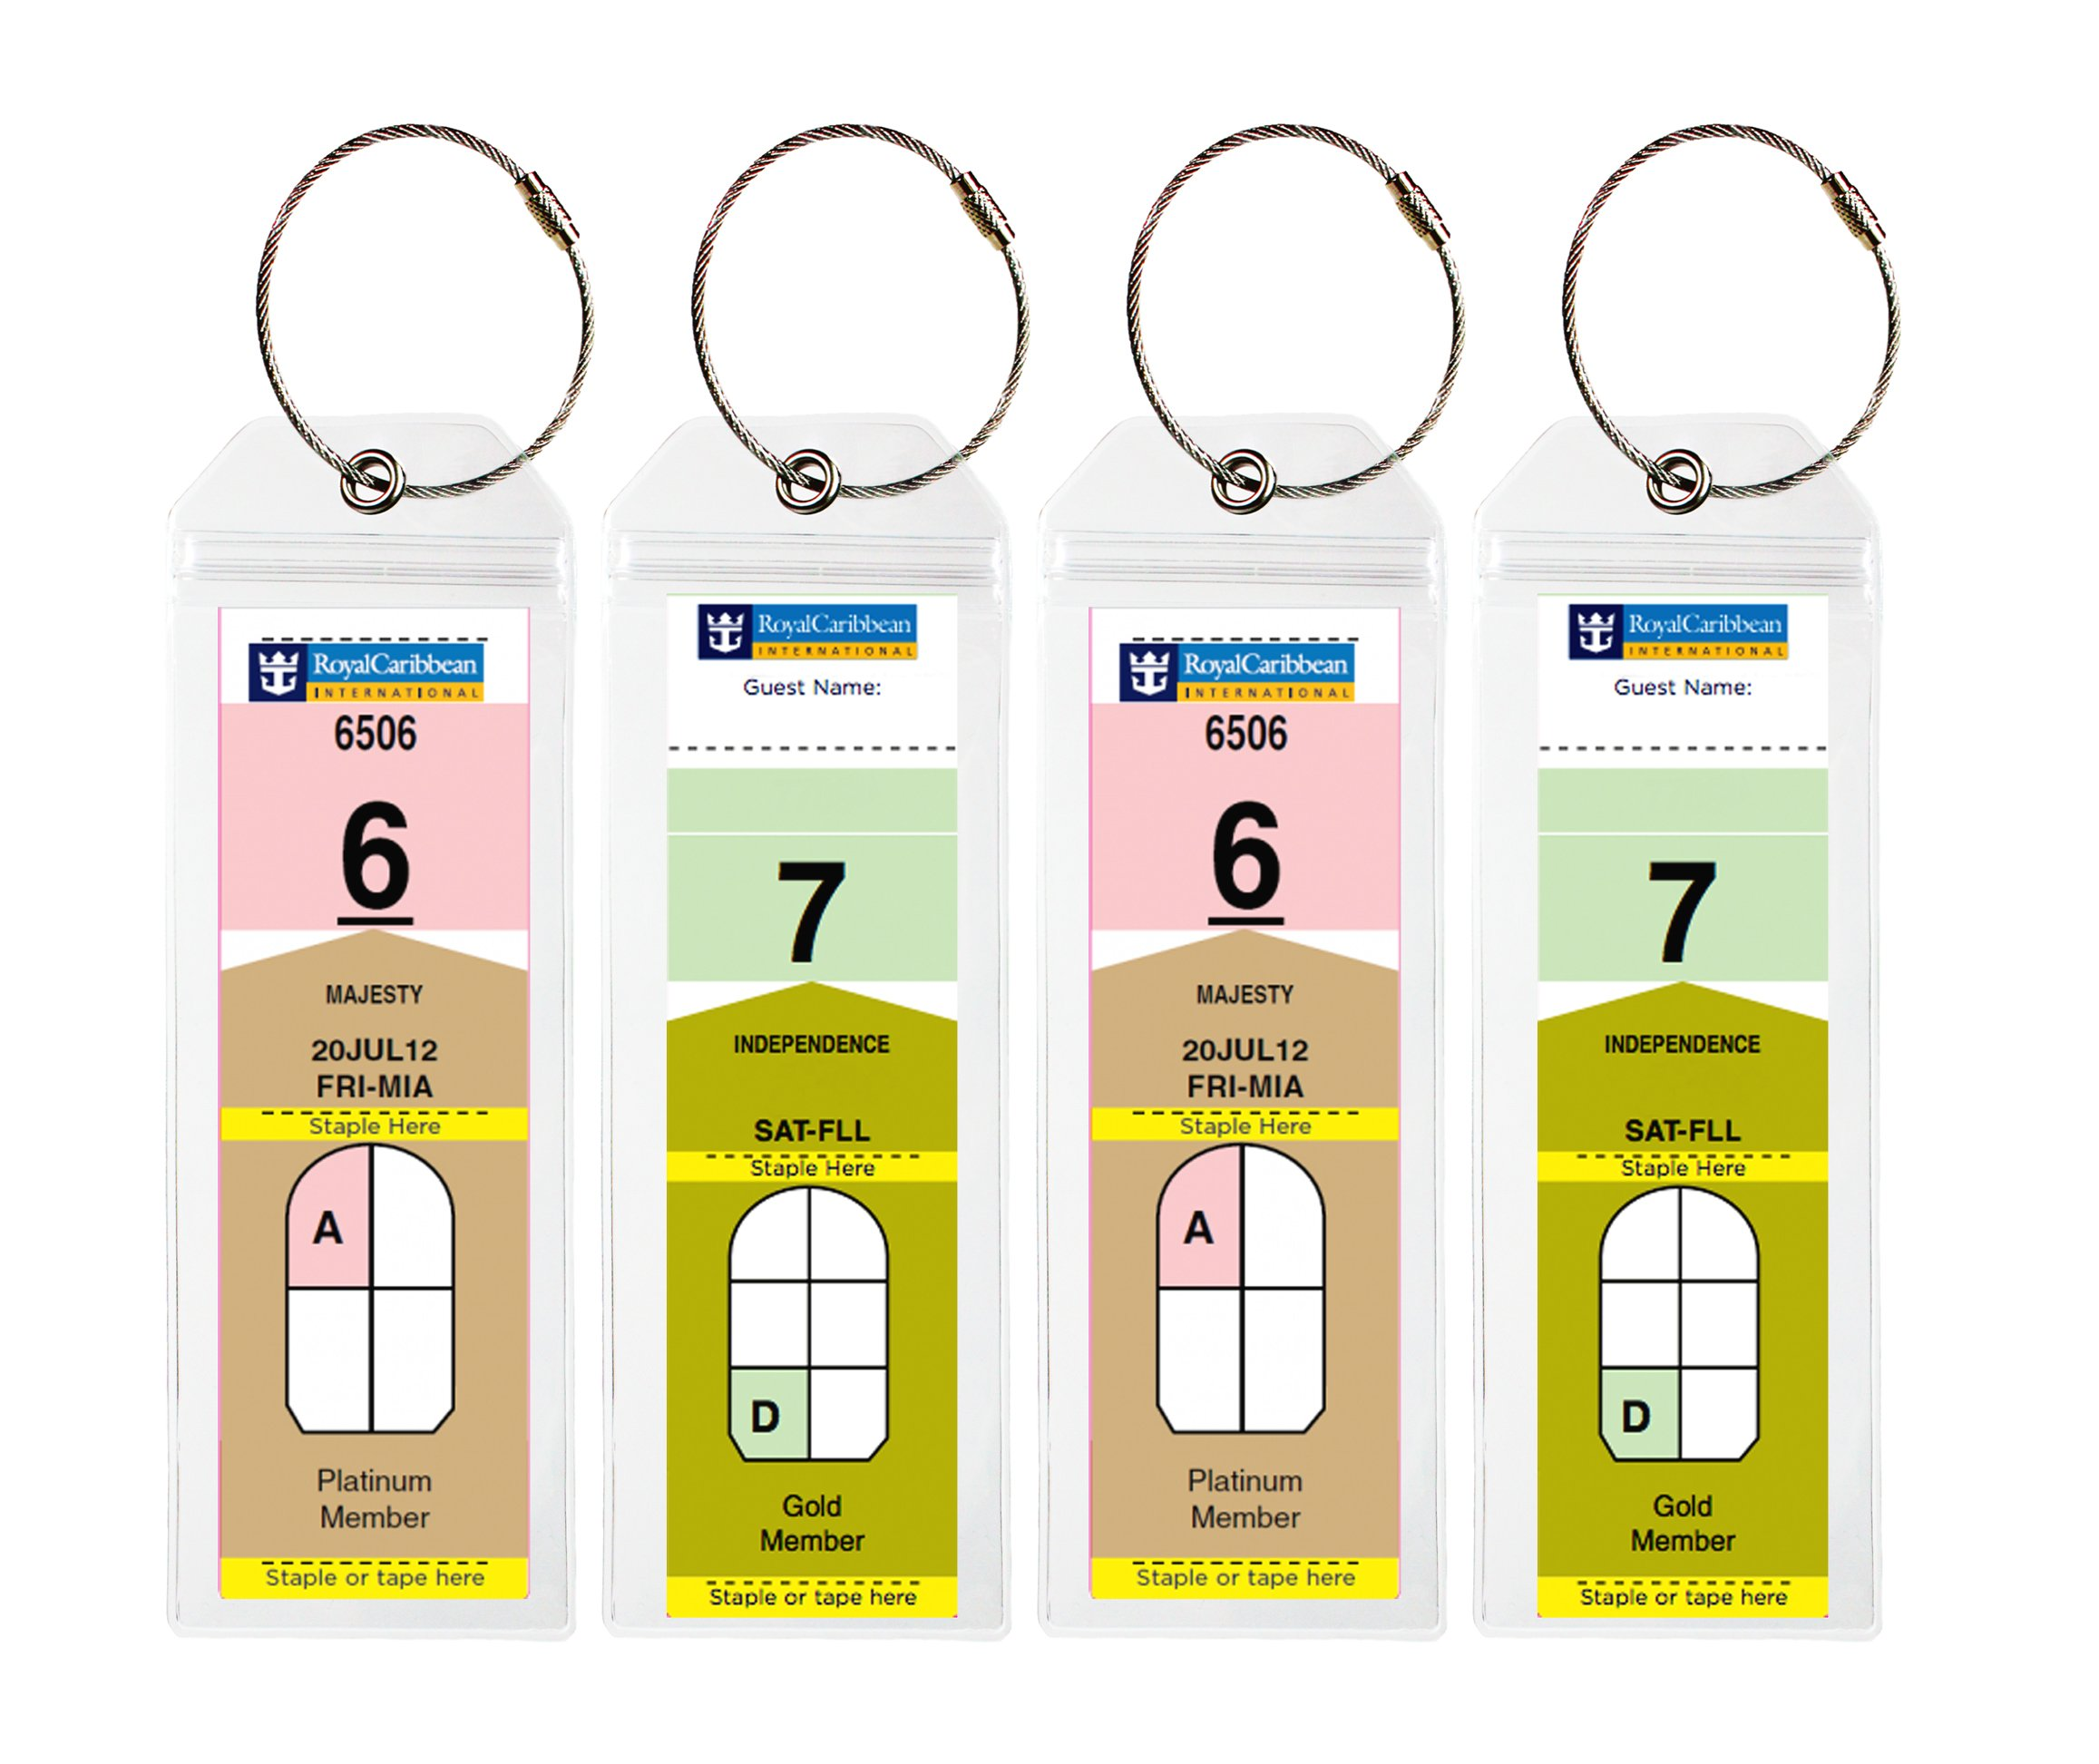 Cruise Tags - Narrow Cruise Ship Luggage Etag Holder with Zip Seal & Steel Loops for Royal Caribbean and Celebrity Cruises (80 Luggage Tag Holders) by Millennial Essentials